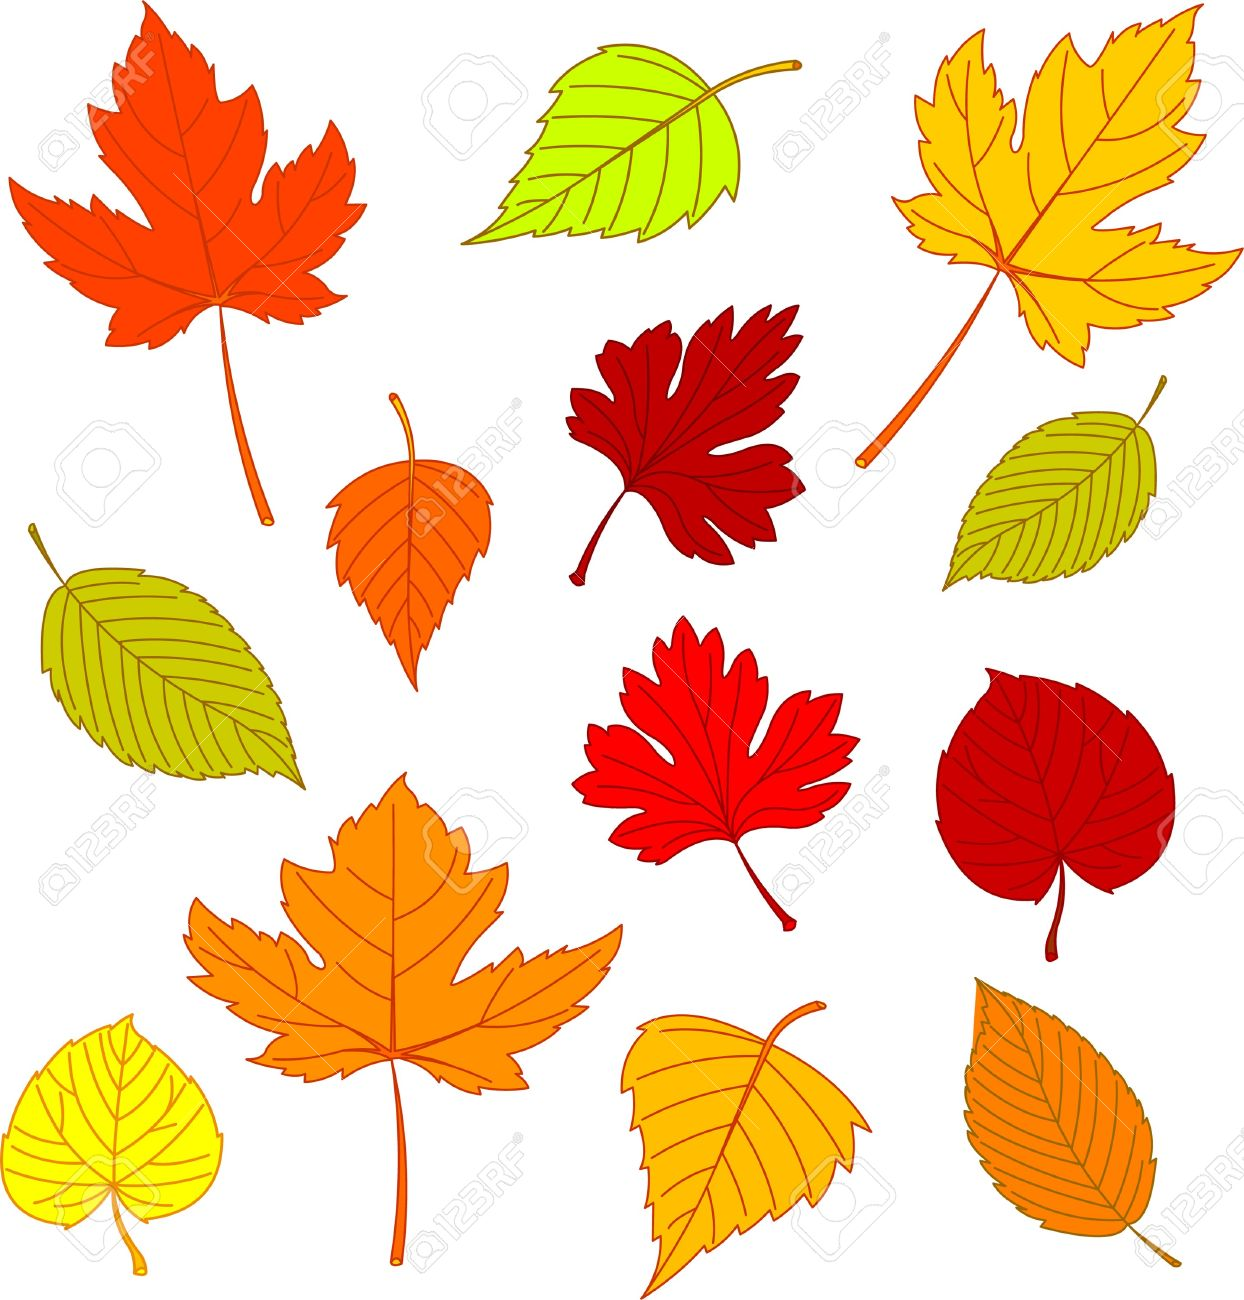 Illustration of different autumn leaves isolated on white Stock Vector - 7879527